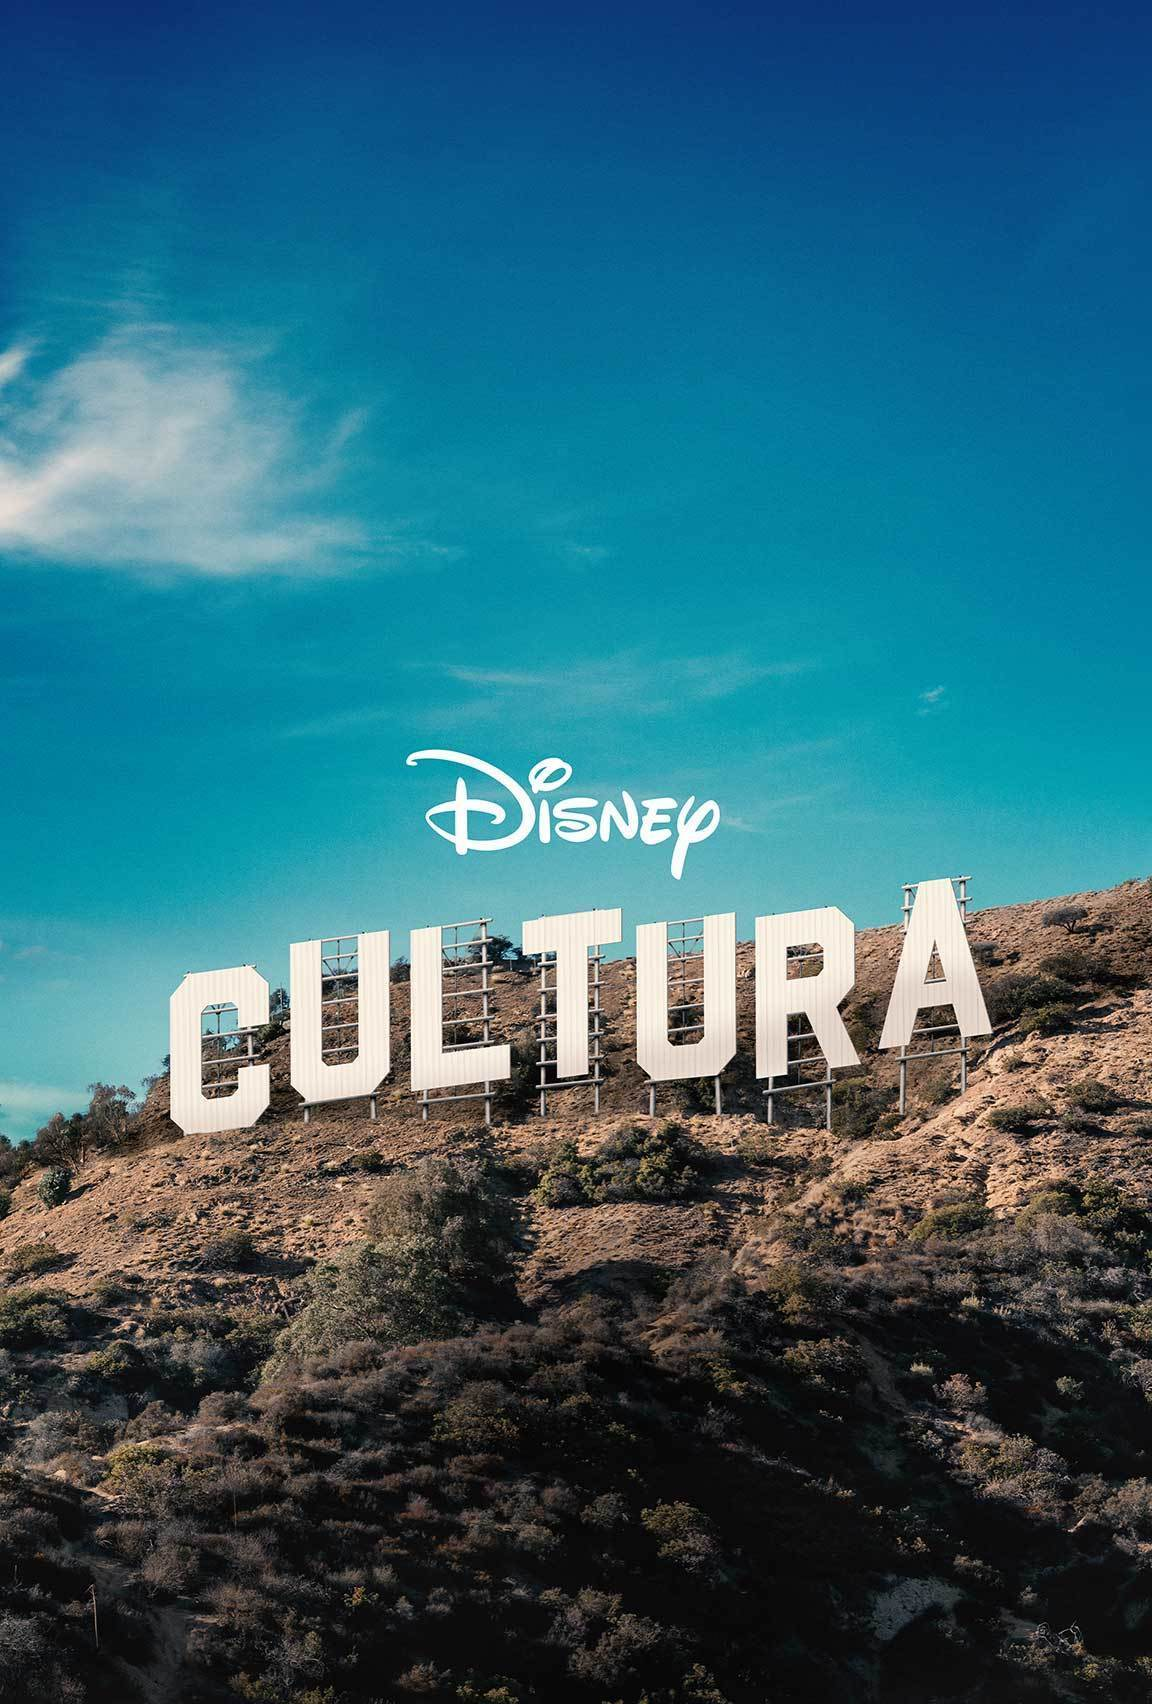 Disney Plus - Prop Culture - Poster